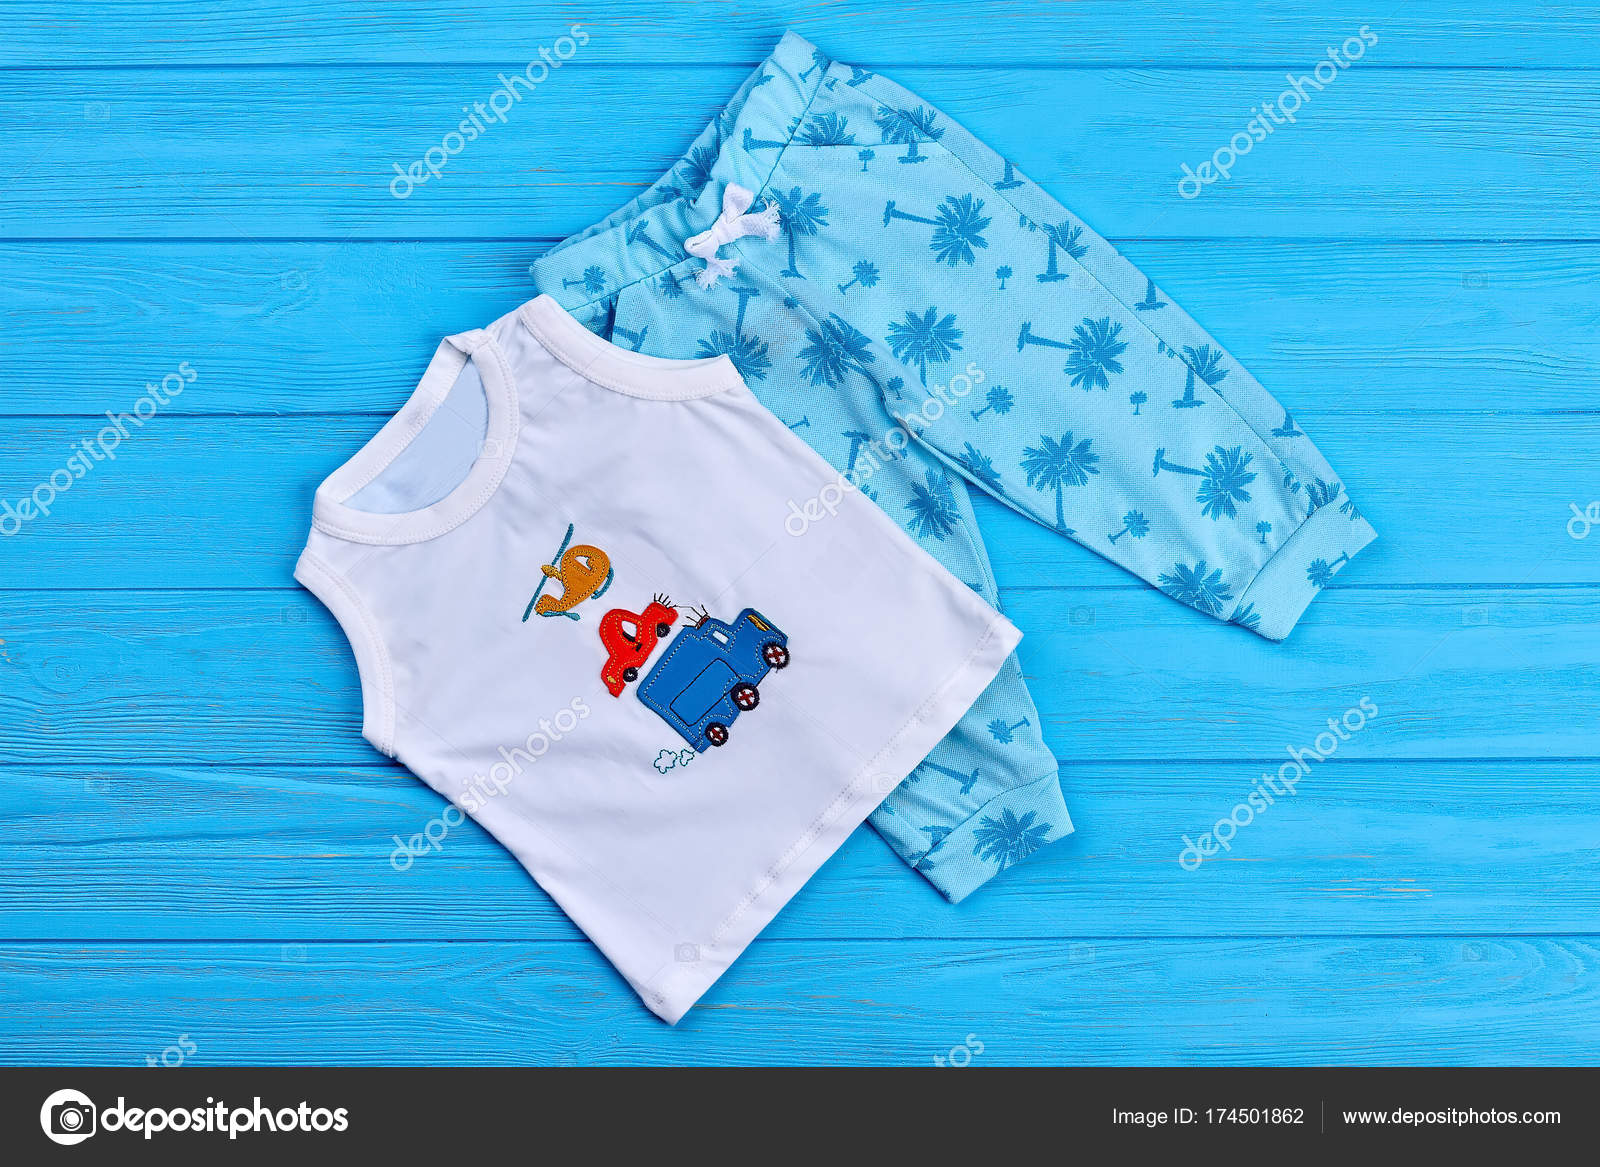 7774c4d743a1 Baby summer fashion style clothes. — Stock Photo © Denisfilm  174501862